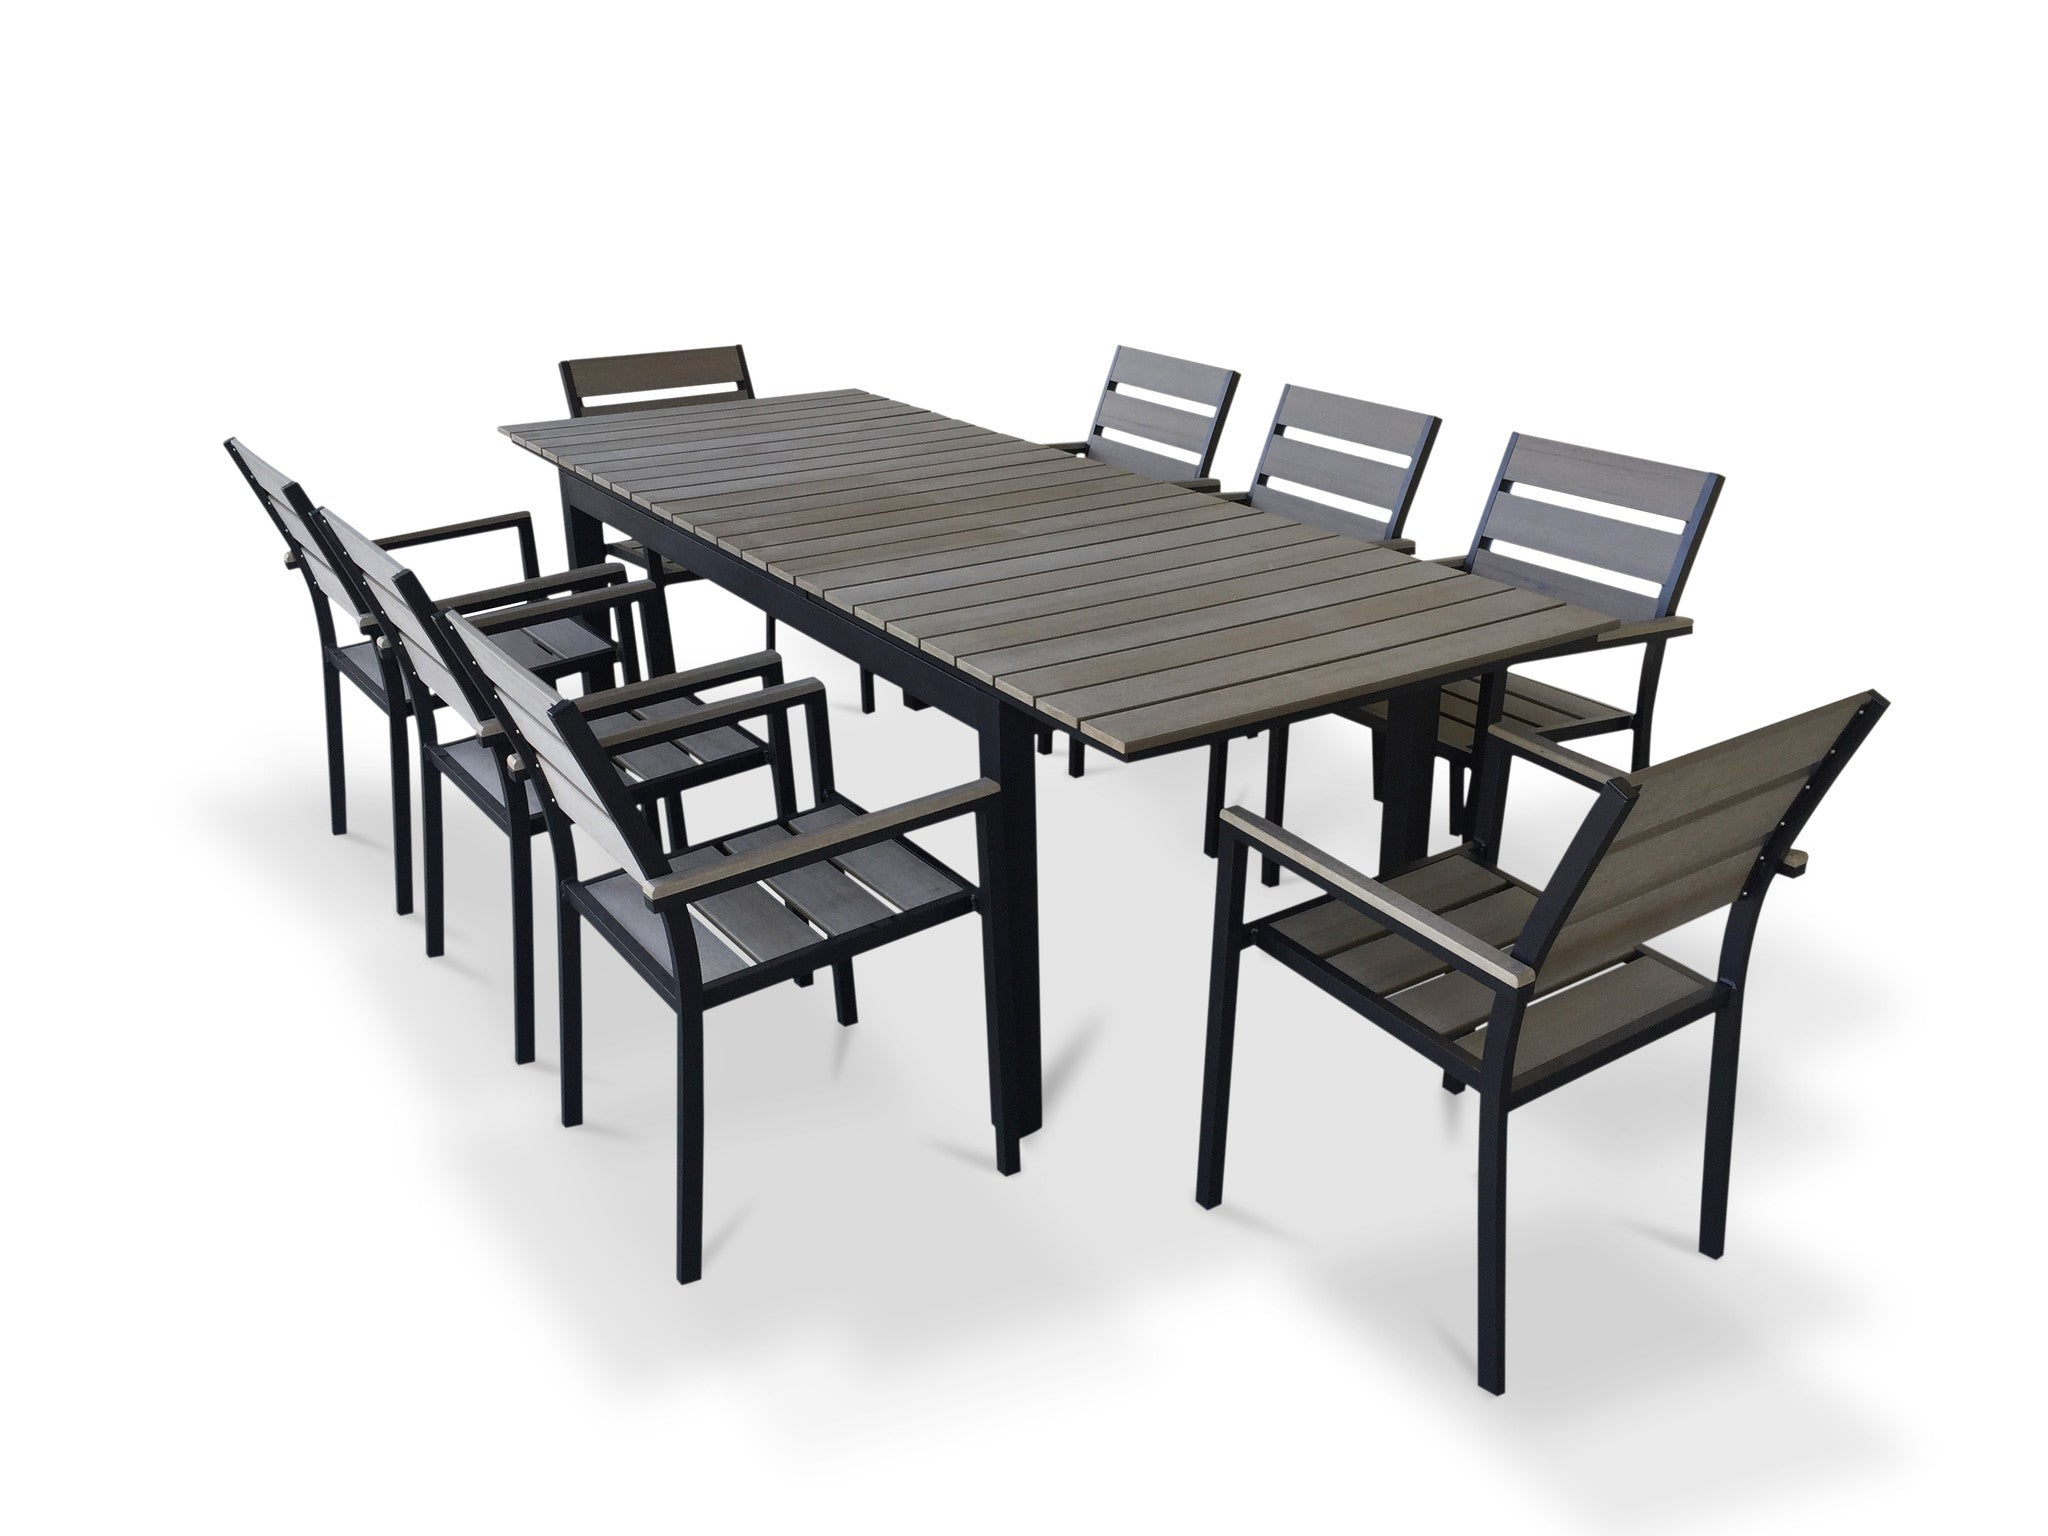 9 piece eco wood extendable outdoor patio dining set rustic gray 9 piece eco wood extendable outdoor patio dining set rustic gray